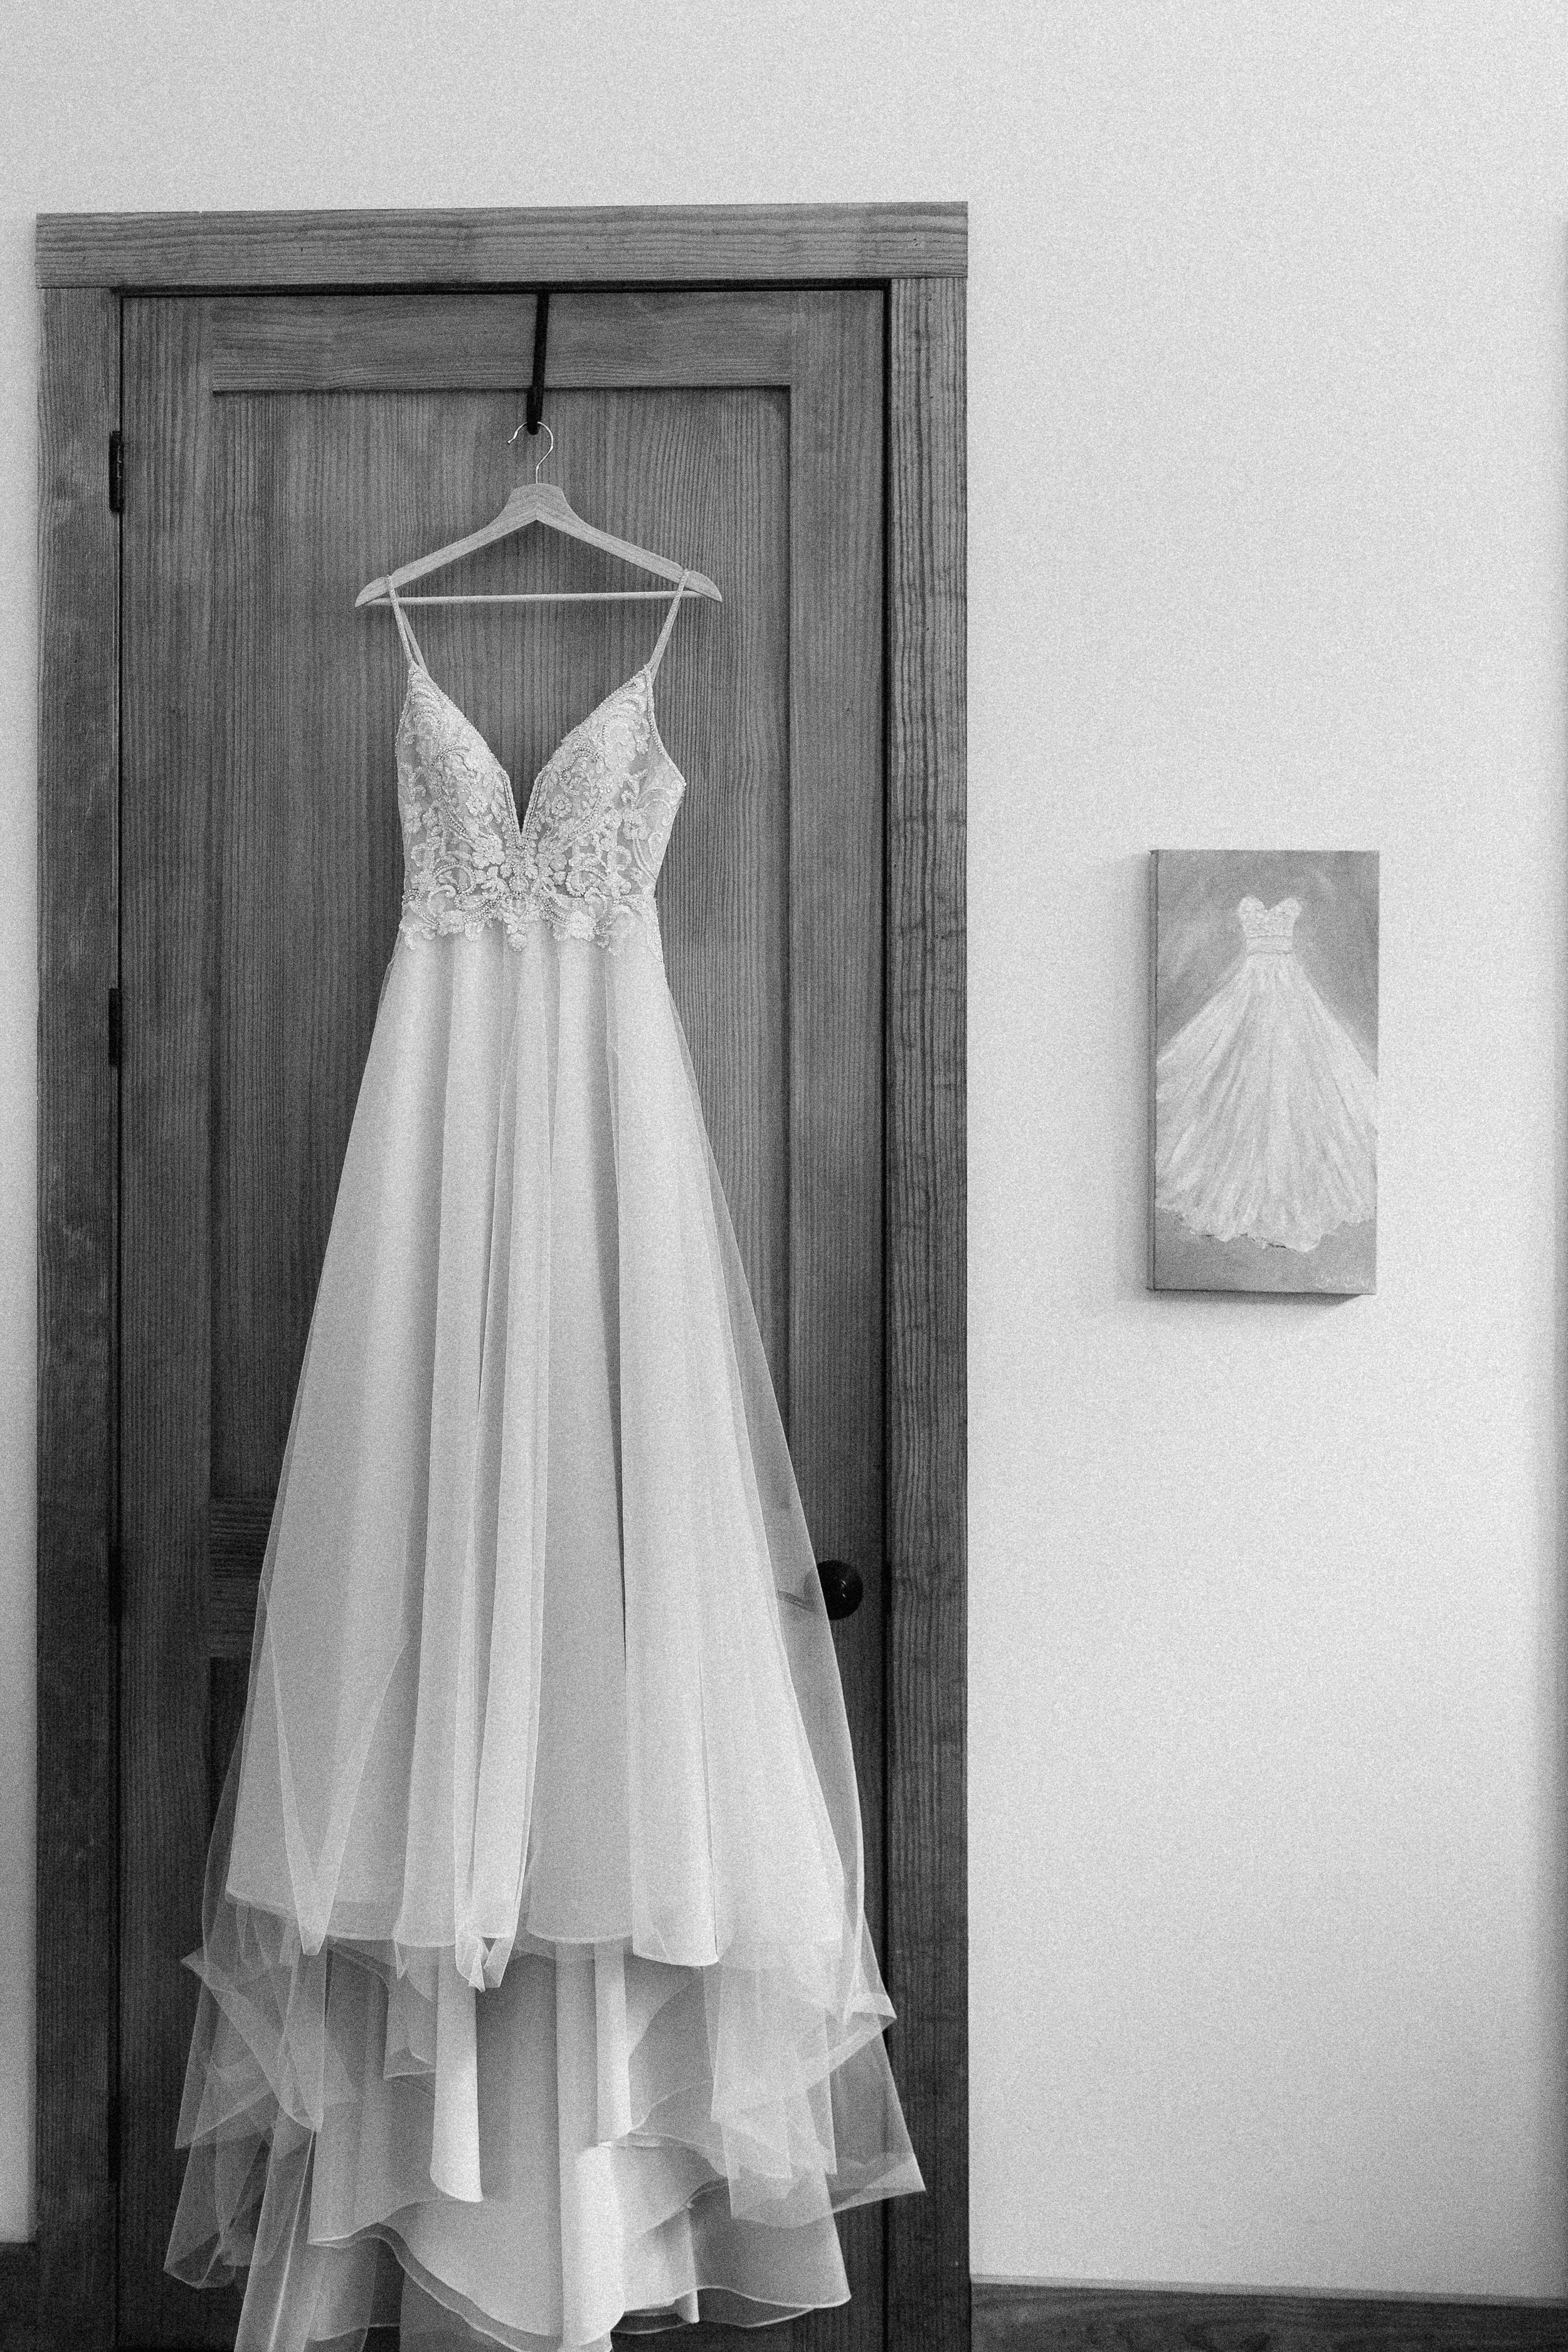 dahlonega_juliette_chapel_photojournalism_atlanta_wedding_photographers_1160.jpg